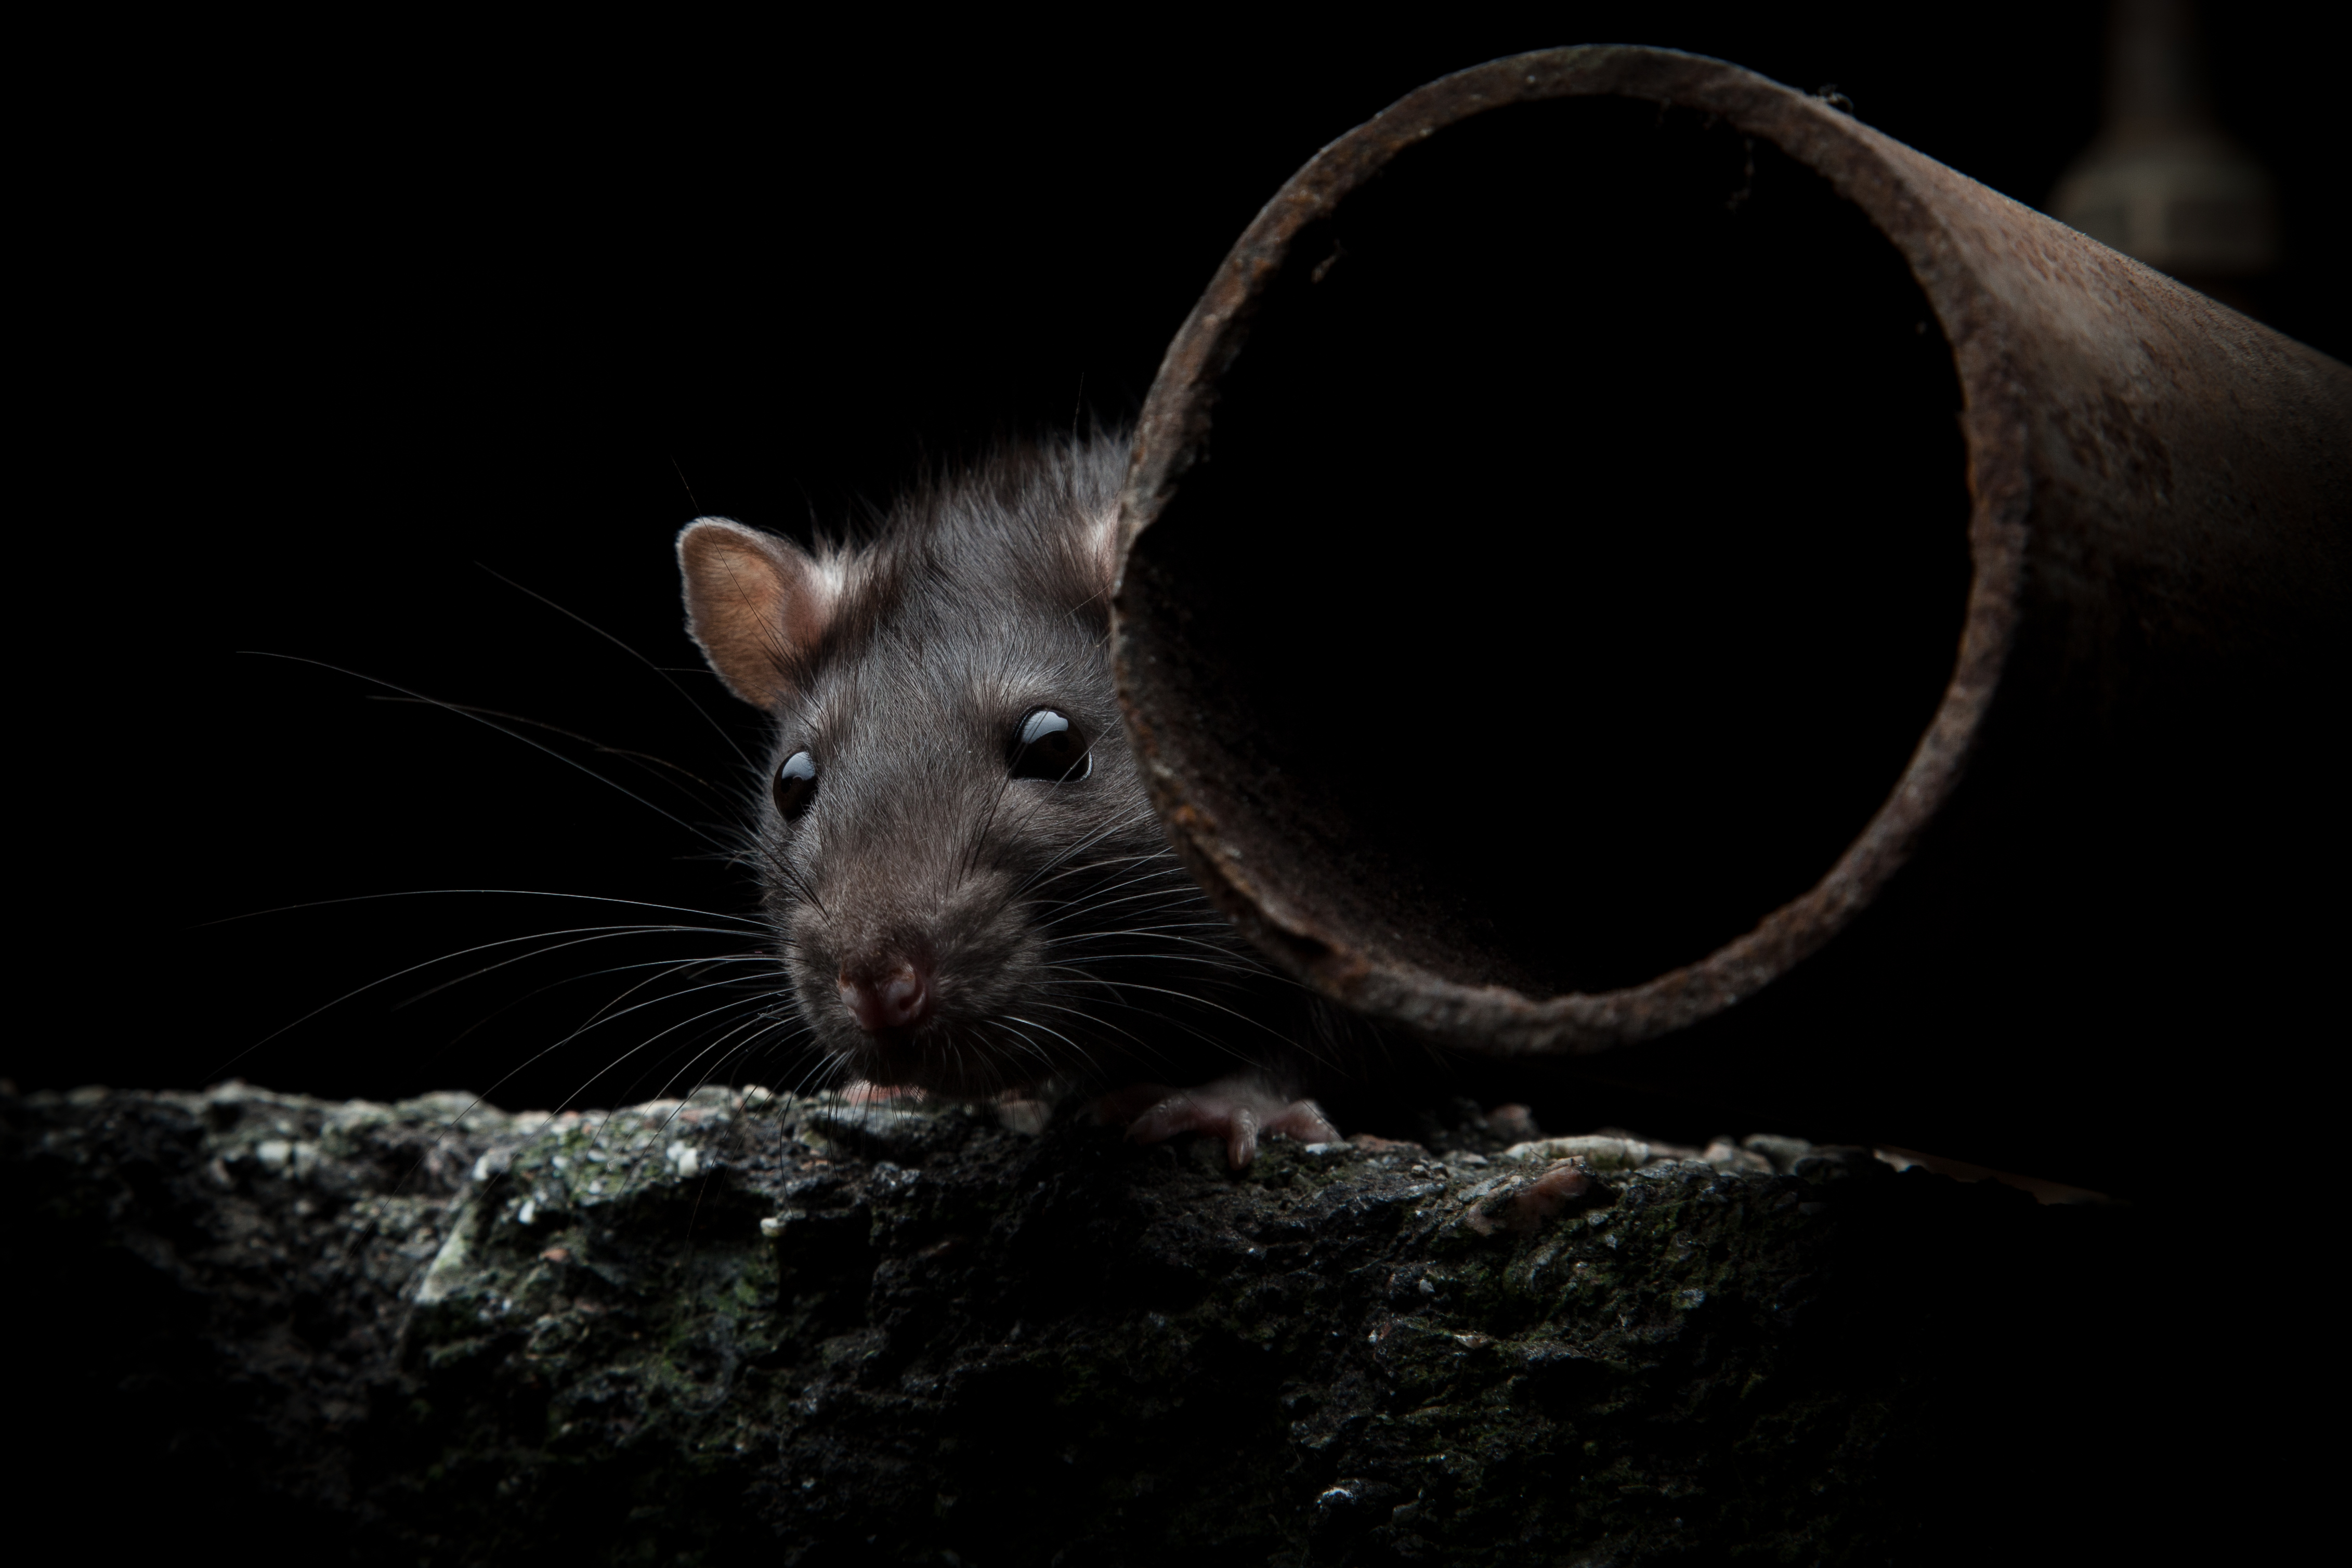 New Drain Doctor Service Keeps Rats From Up The Drain